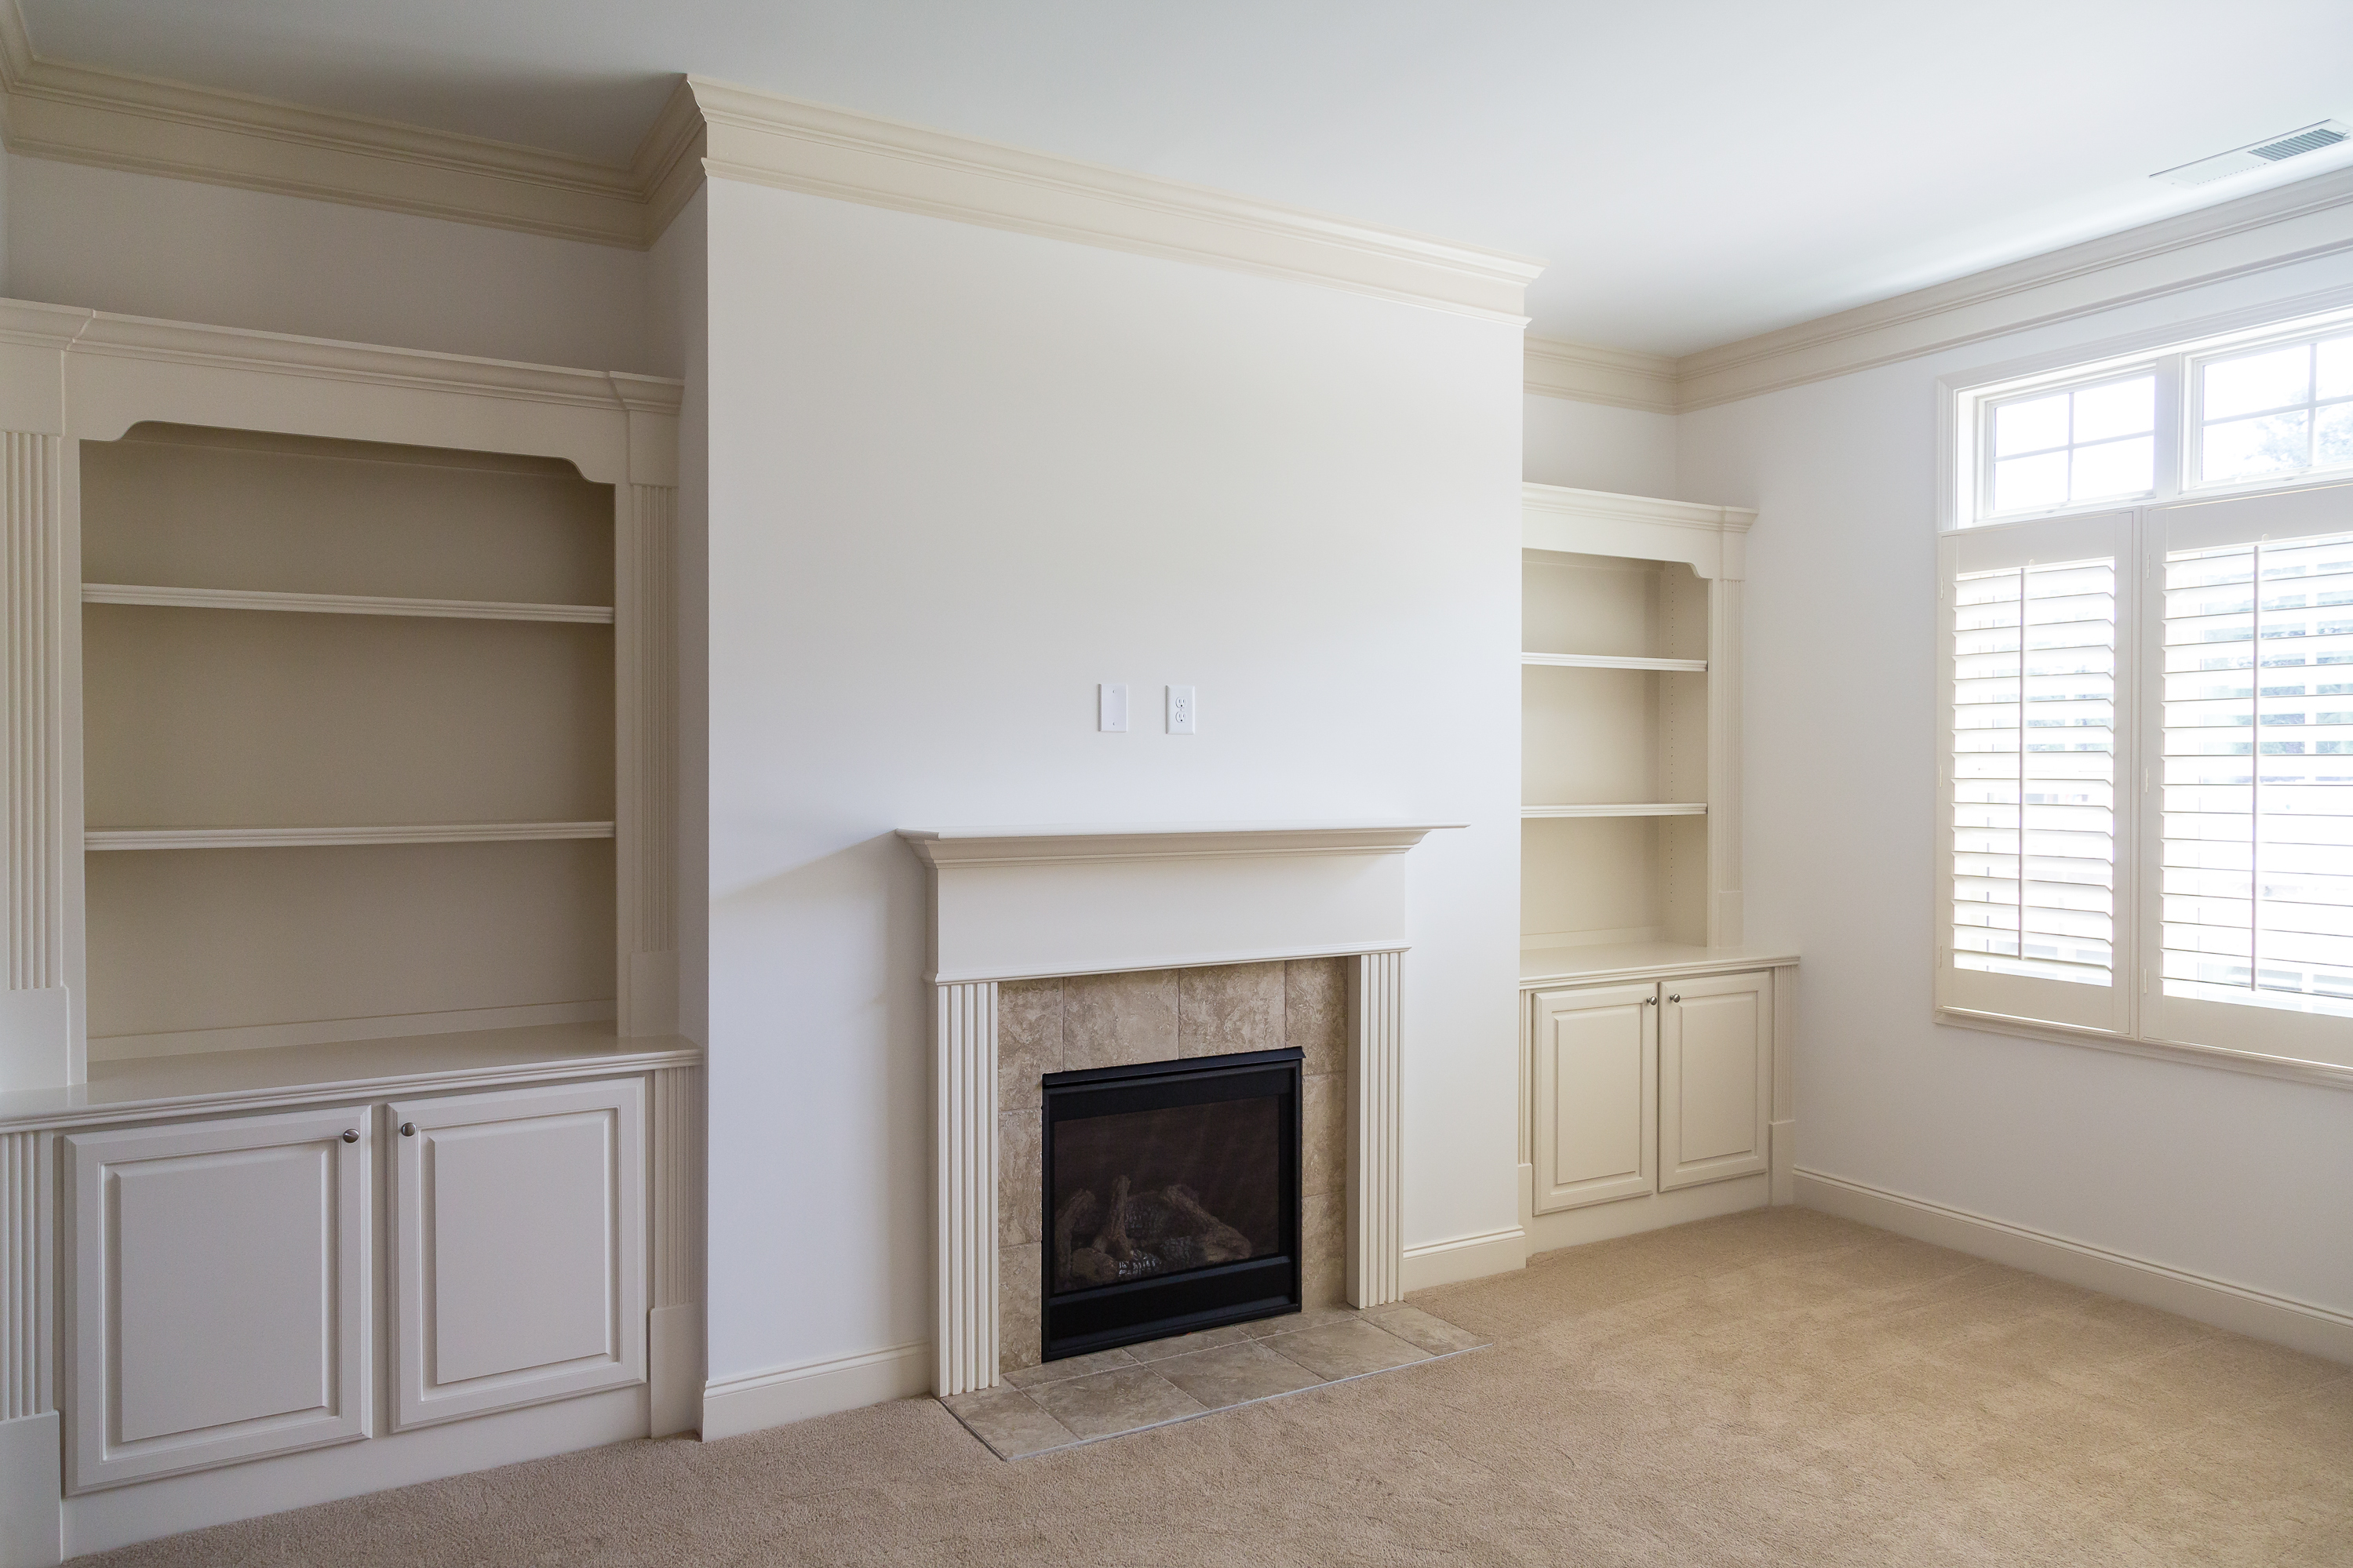 A new home with fireplace and builtin bookcases